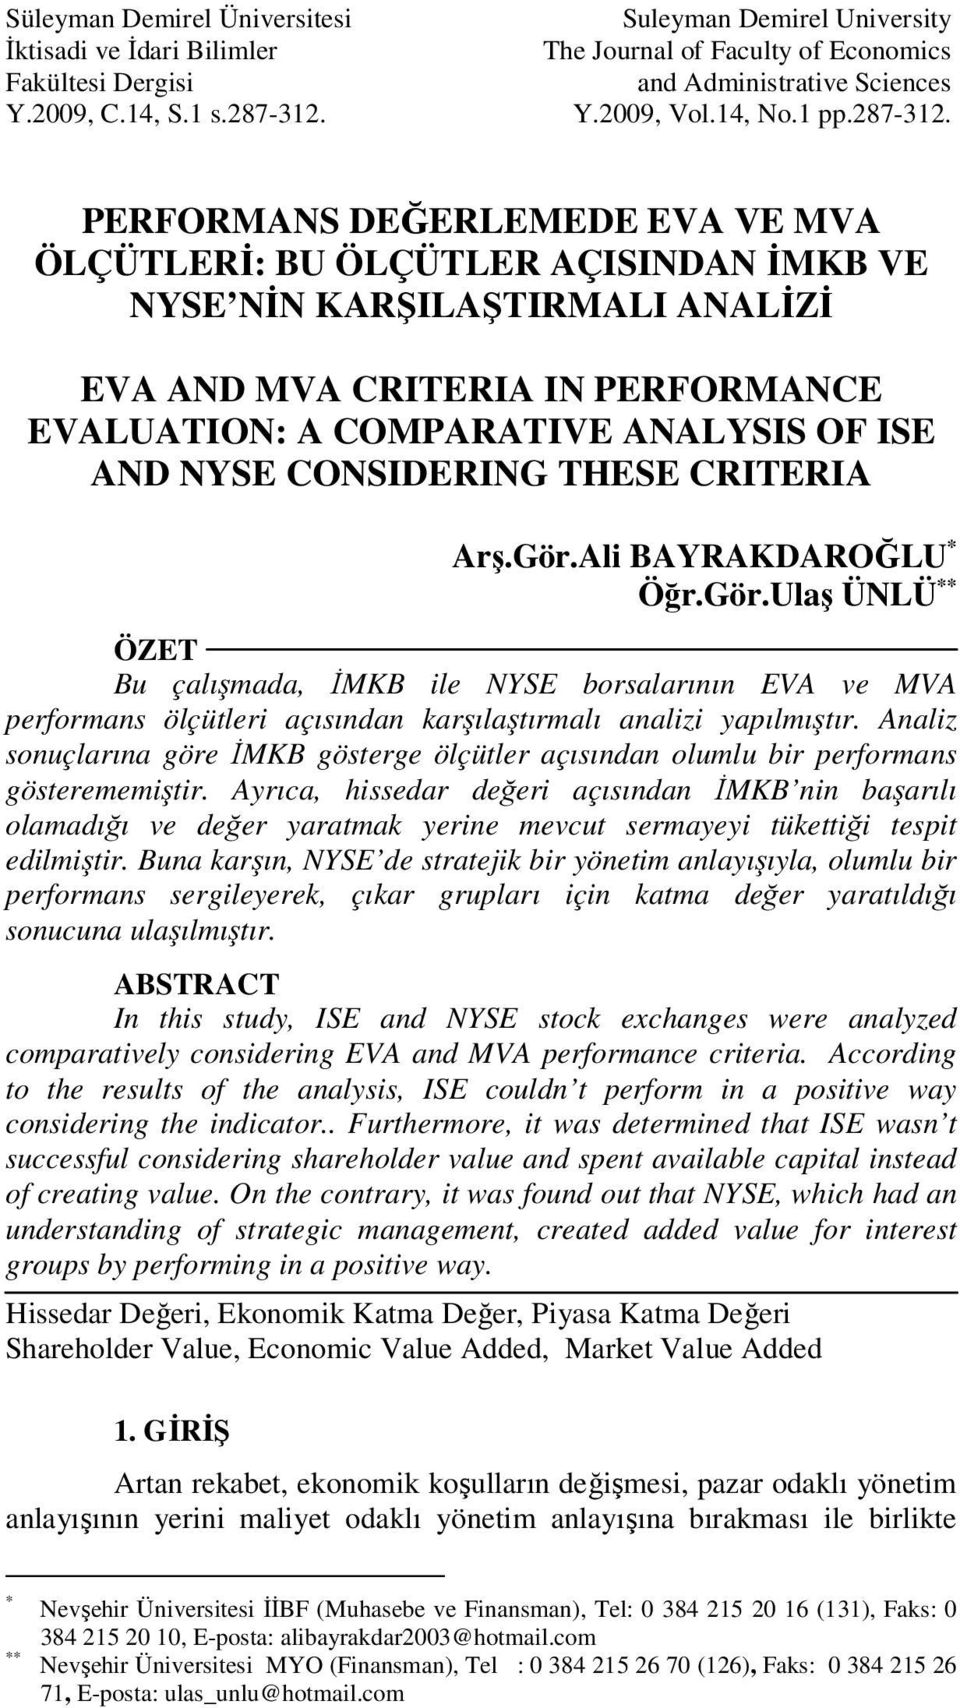 PERFORMANS DEĞERLEMEDE EVA VE MVA ÖLÇÜTLERİ: BU ÖLÇÜTLER AÇISINDAN İMKB VE NYSE NİN KARŞILAŞTIRMALI ANALİZİ EVA AND MVA CRITERIA IN PERFORMANCE EVALUATION: A COMPARATIVE ANALYSIS OF ISE AND NYSE